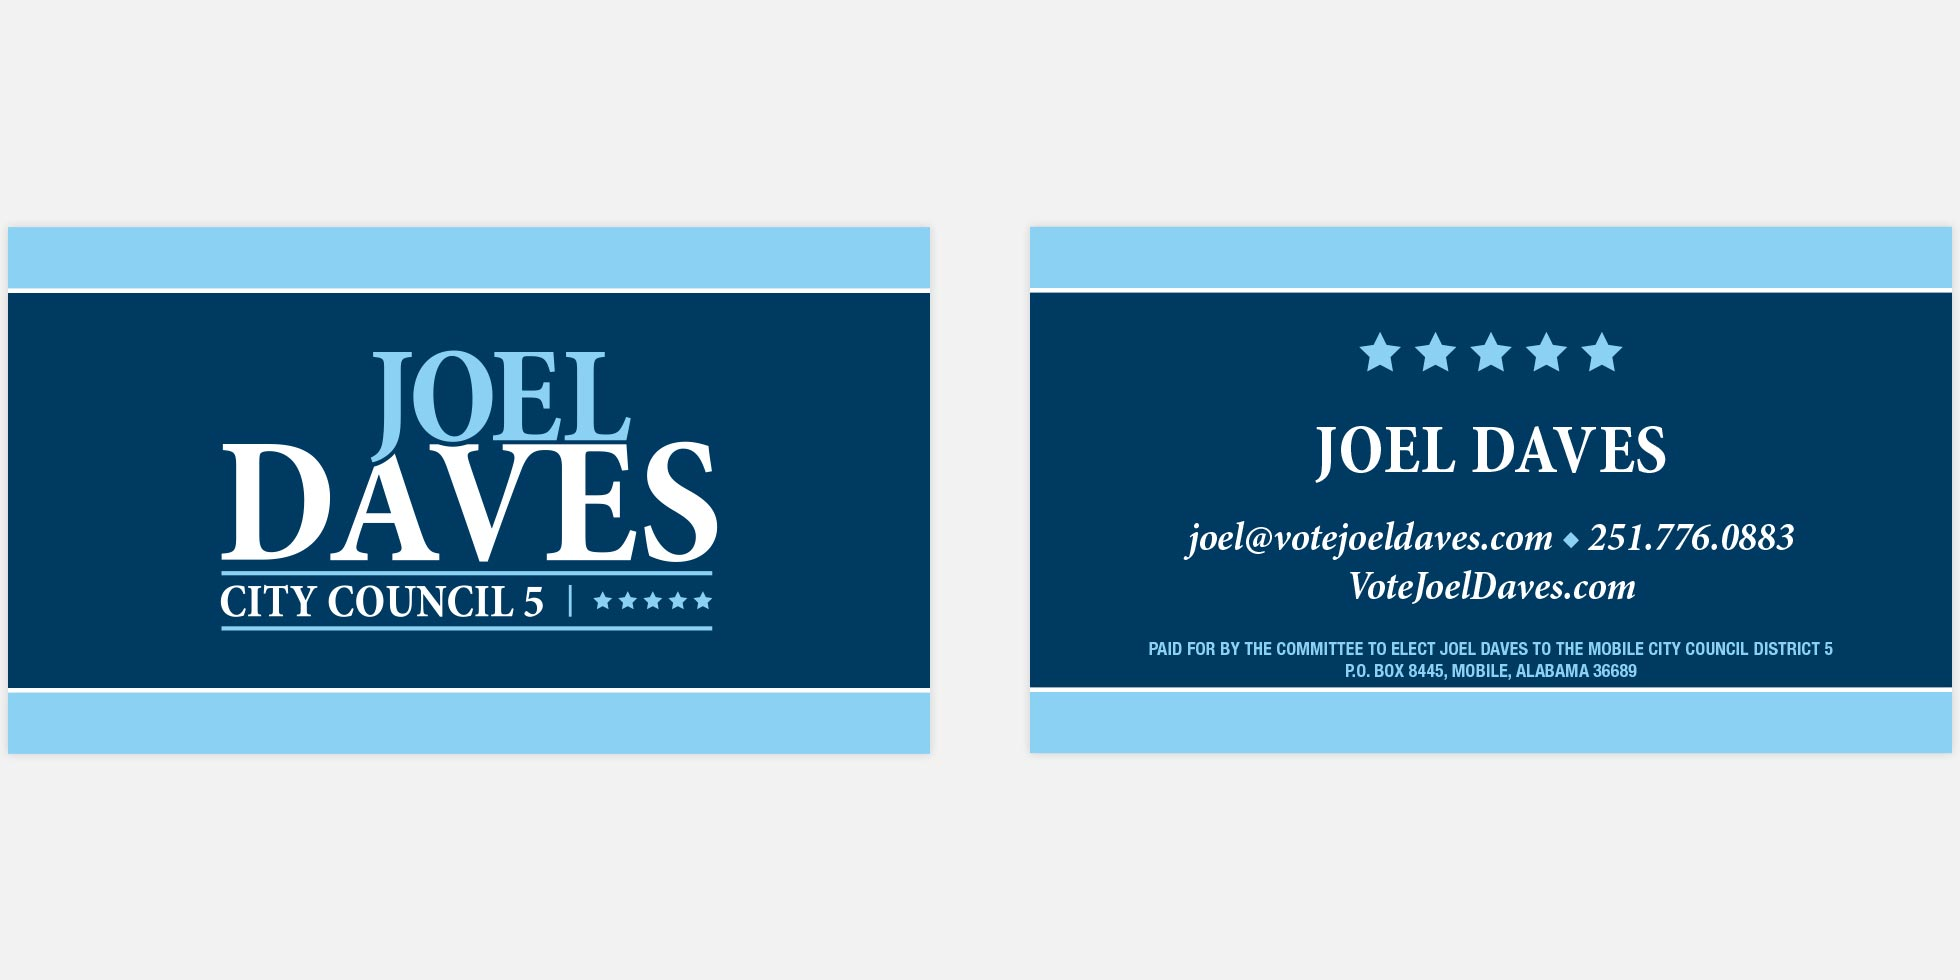 Joel Daves - Business card